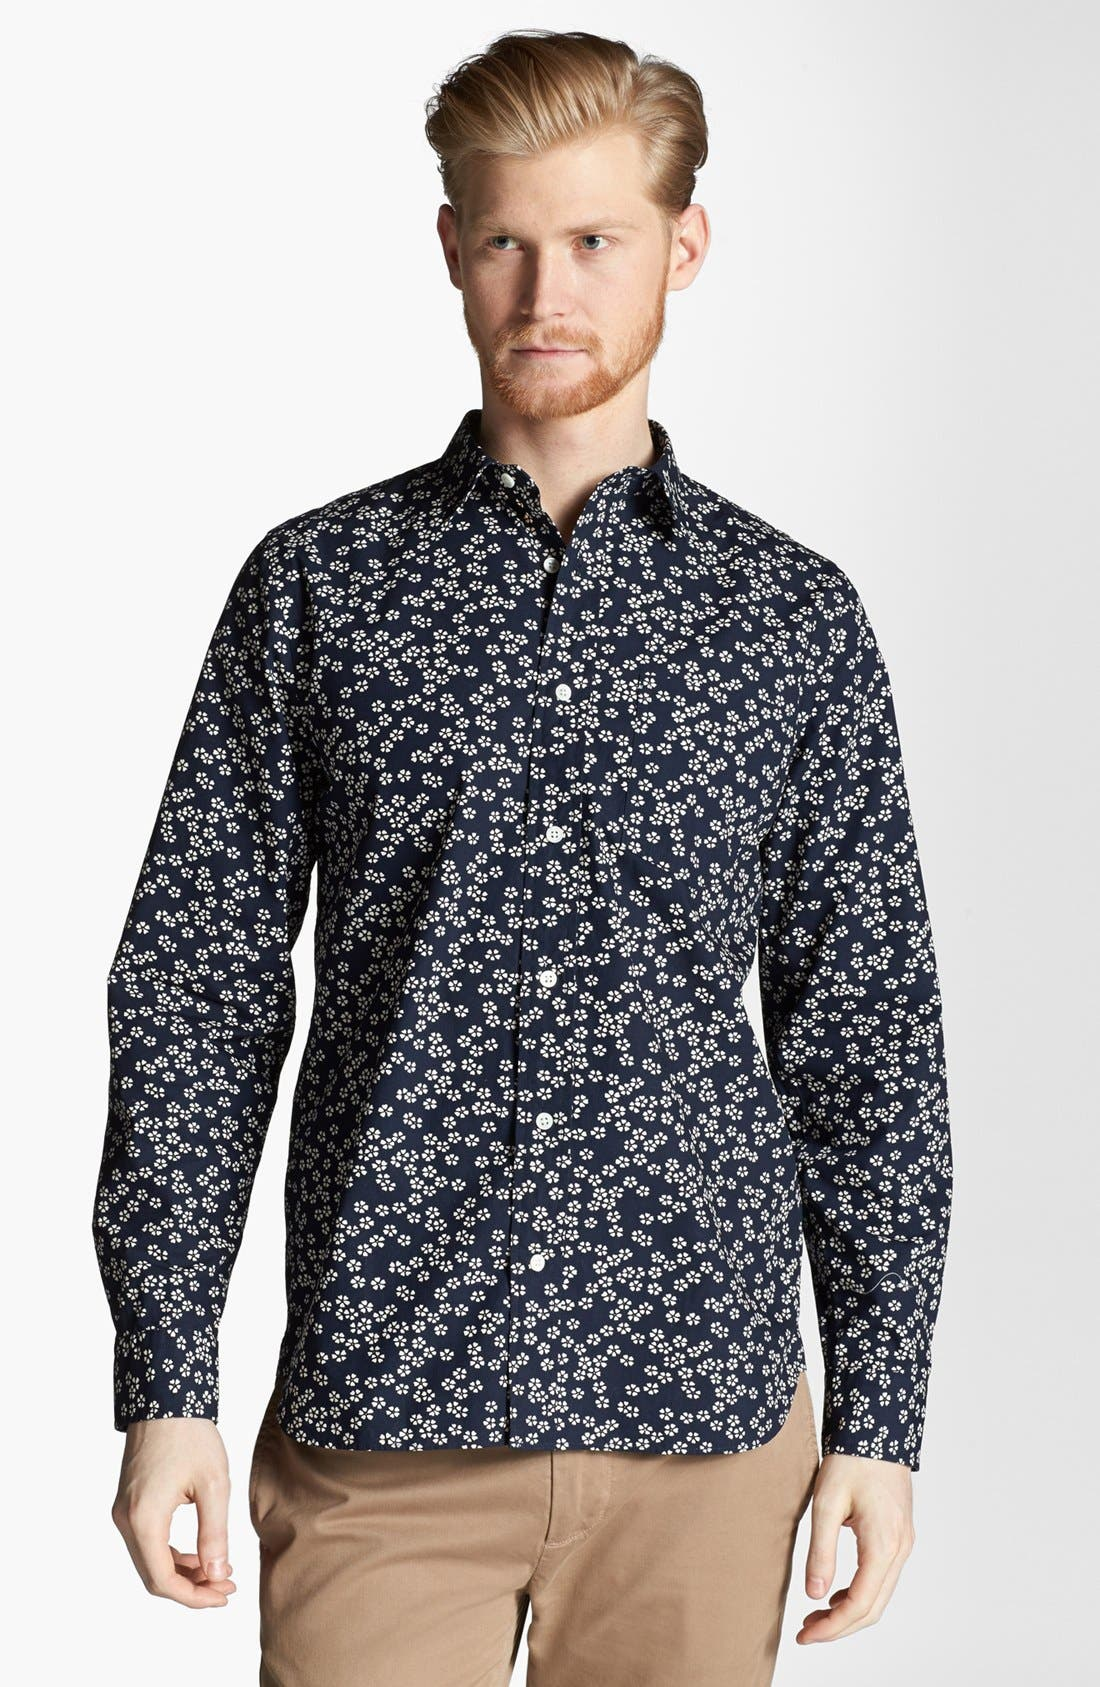 Alternate Image 1 Selected - Jack Spade 'Foley' Floral Print Woven Shirt